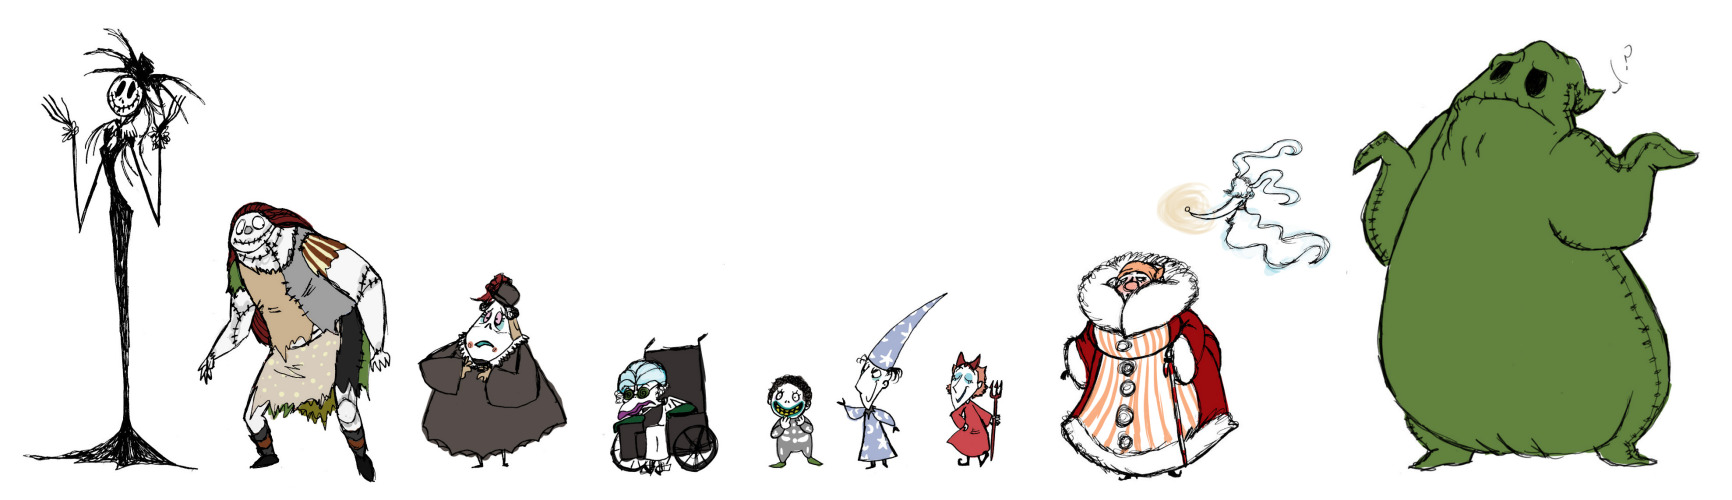 hight resolution of  ooc the nightmare before christmas but genderbent really nothing new to add or